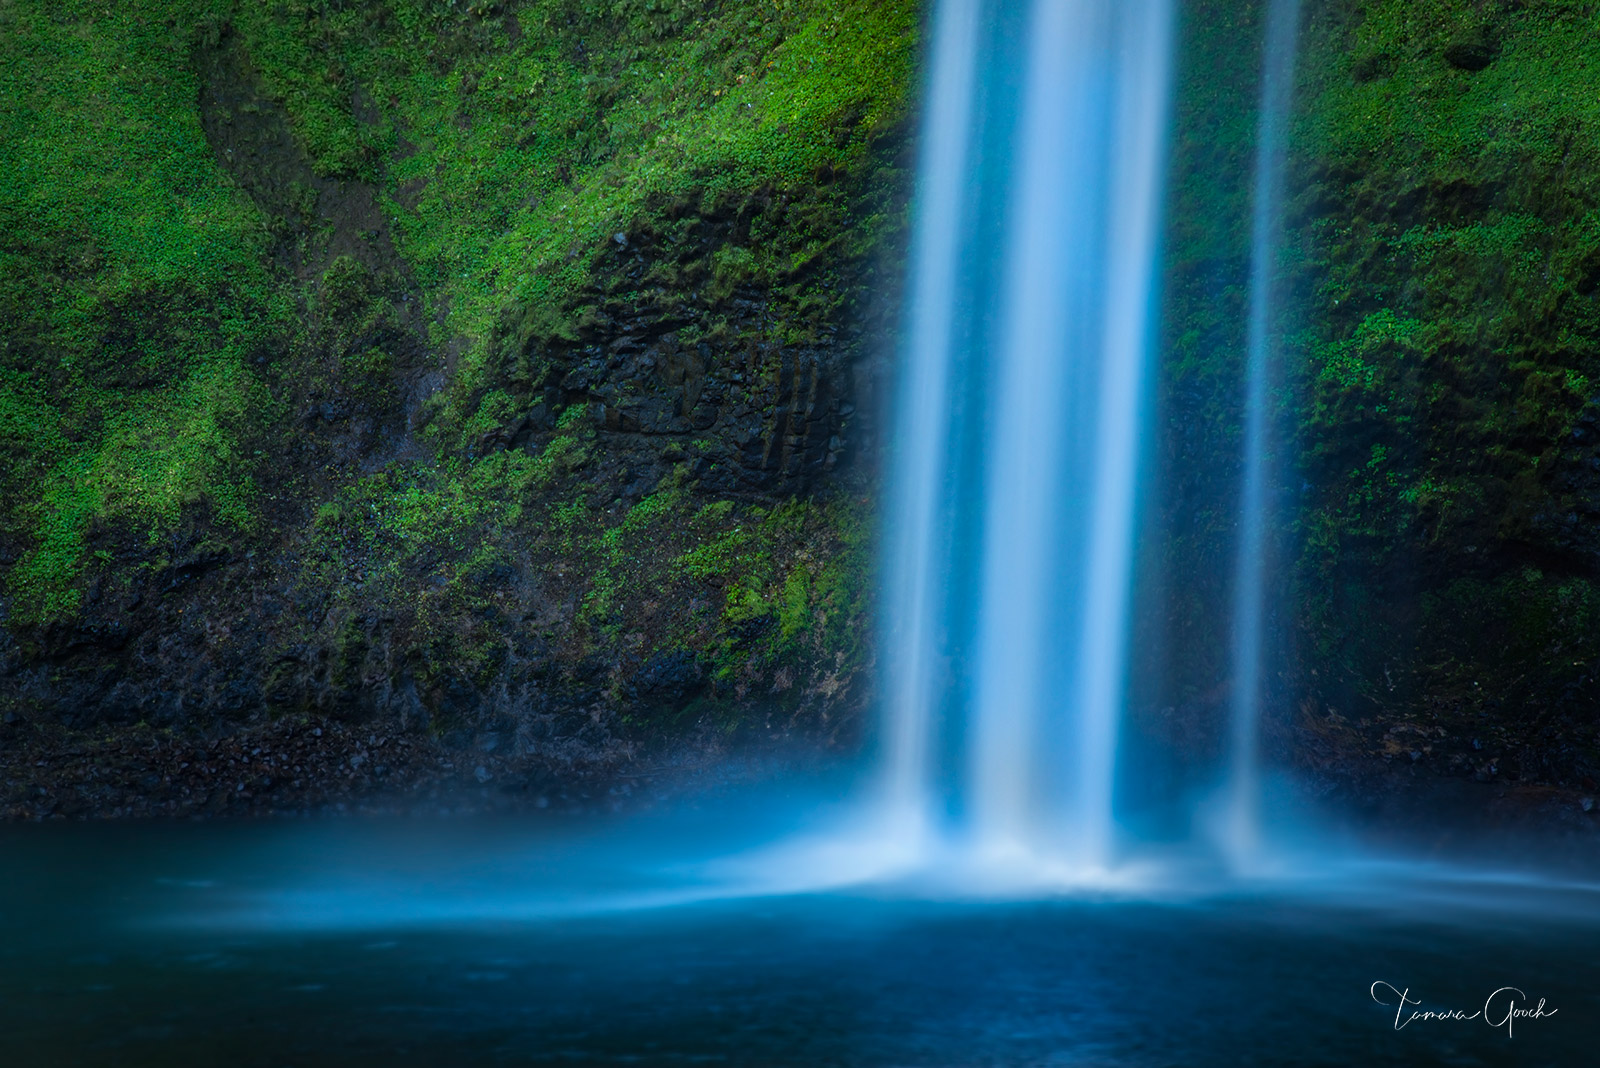 Limited Edition Print of 50. Waterfalls are one of natures best miracles and the Colombia River Gorge area of Oregon is home...